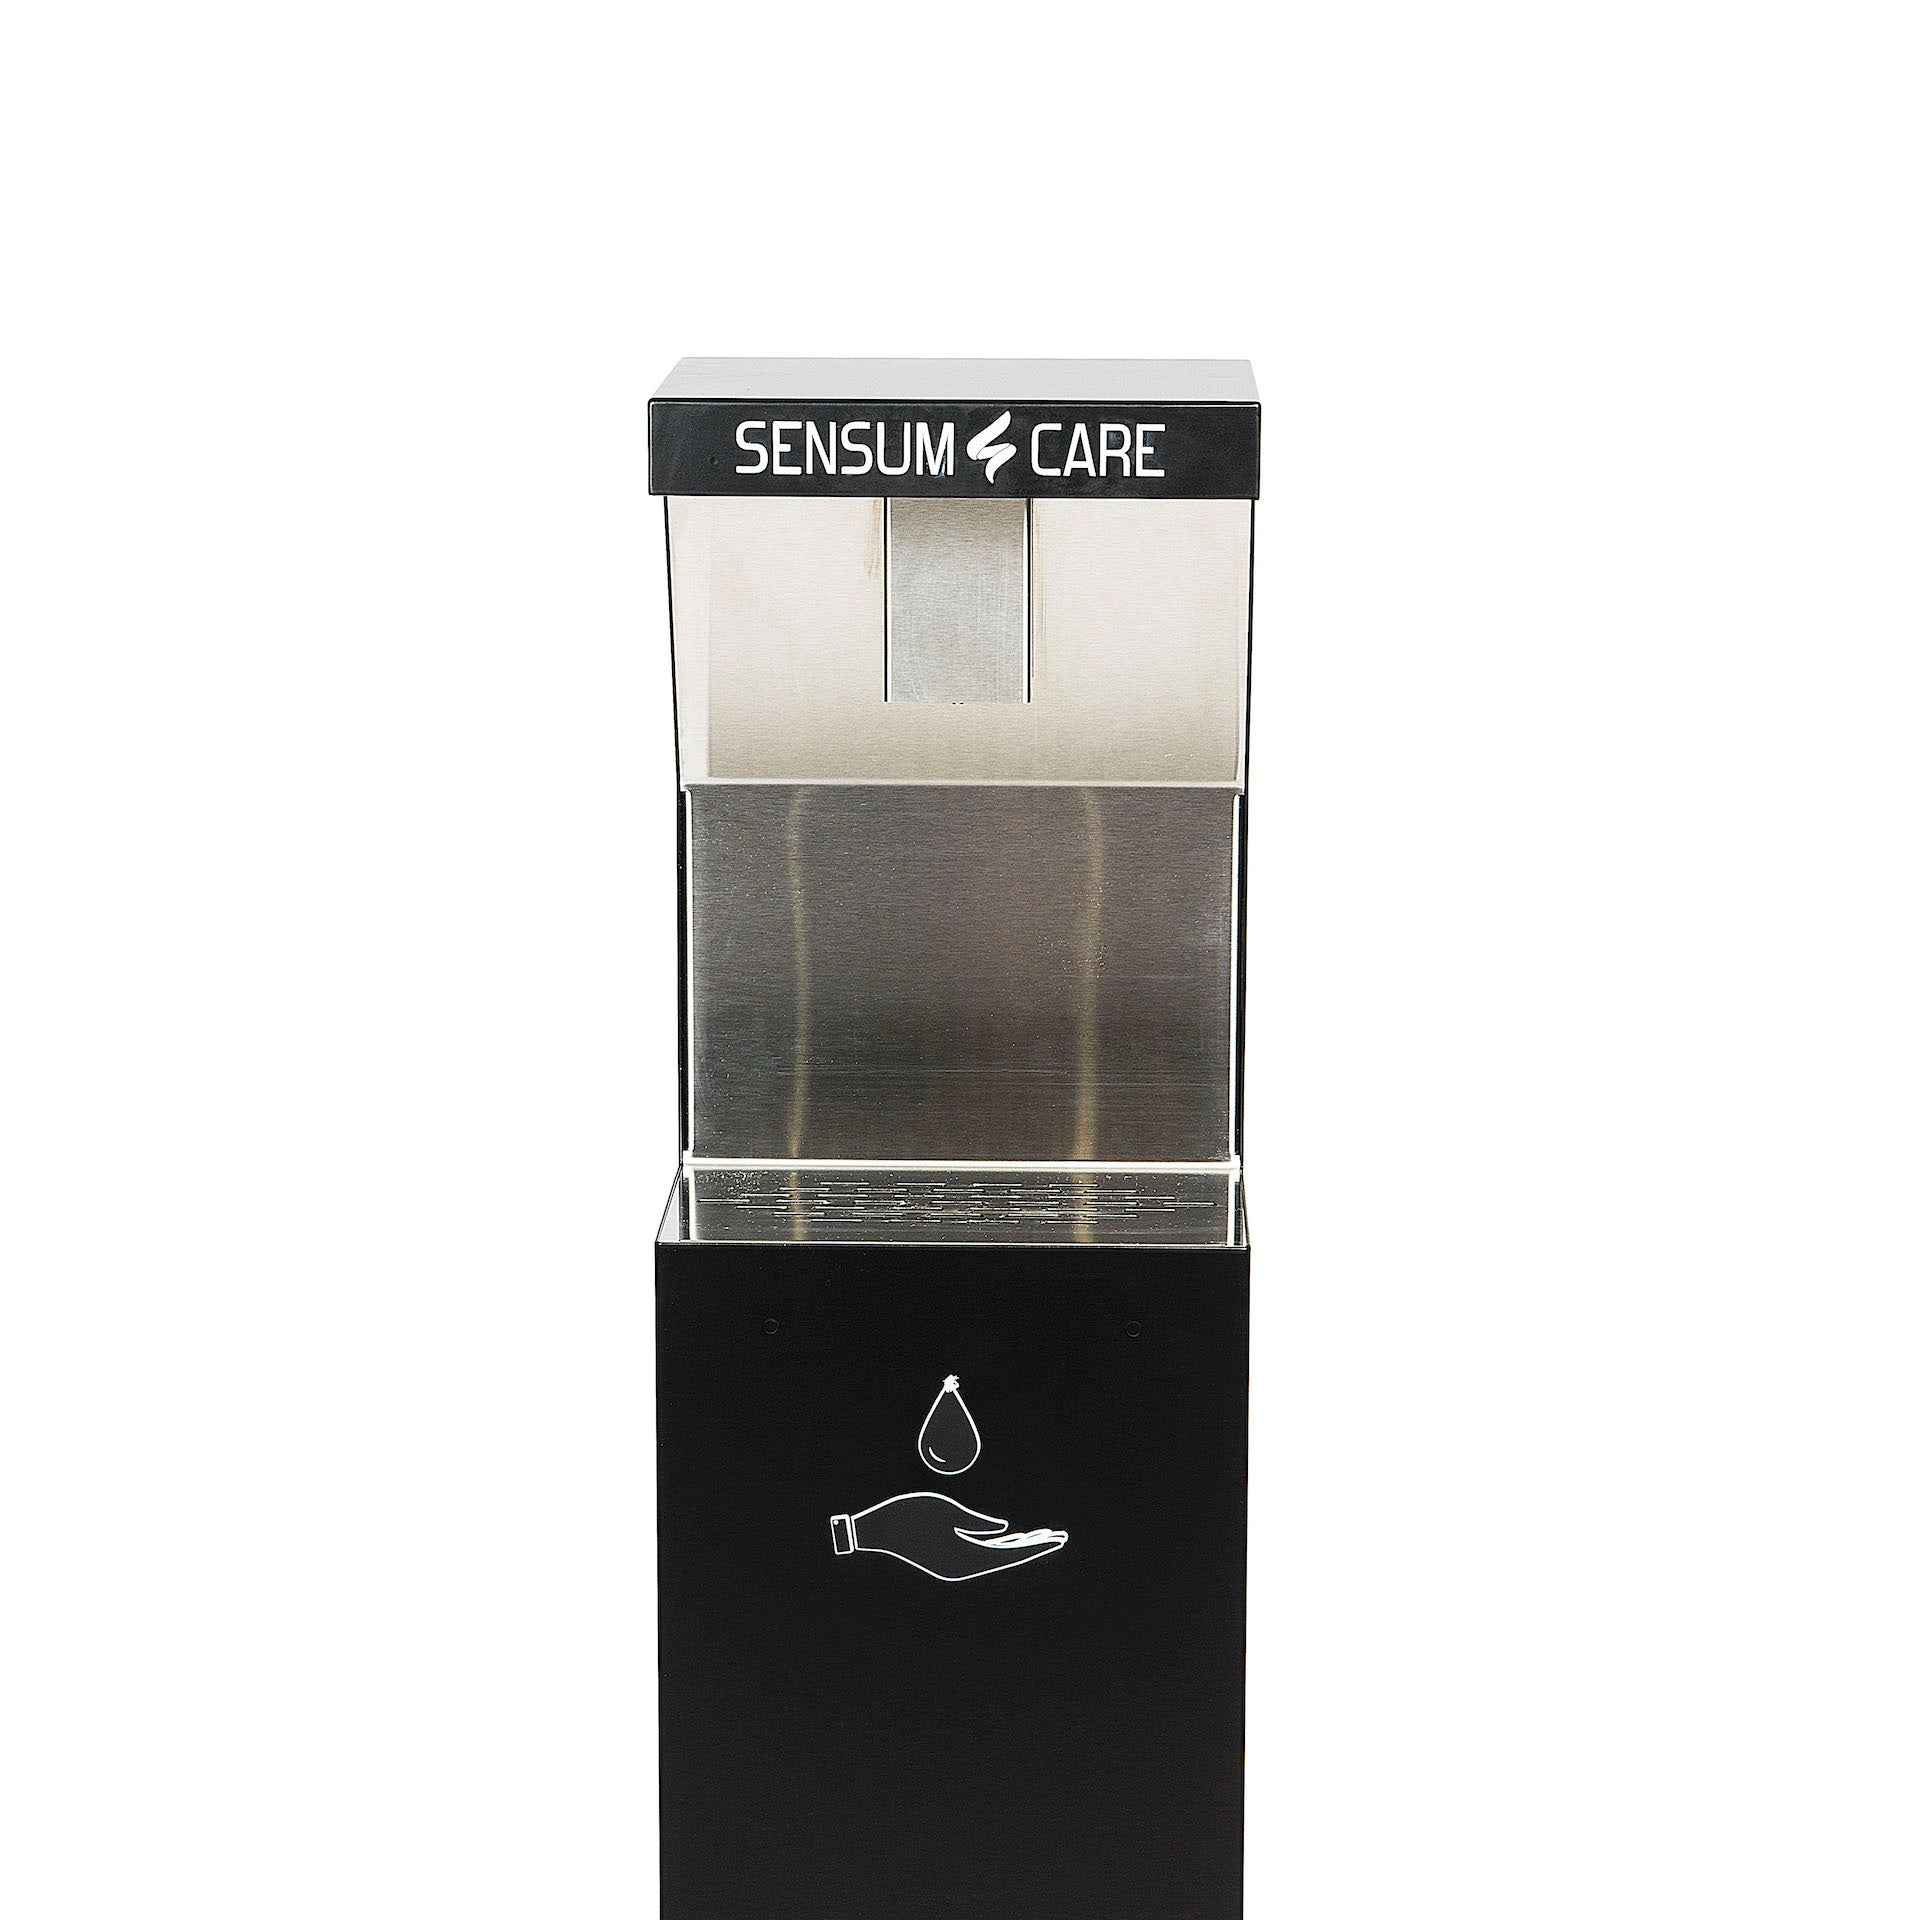 Sensum Care Automatic Disenfectant Dispenser System - Medium